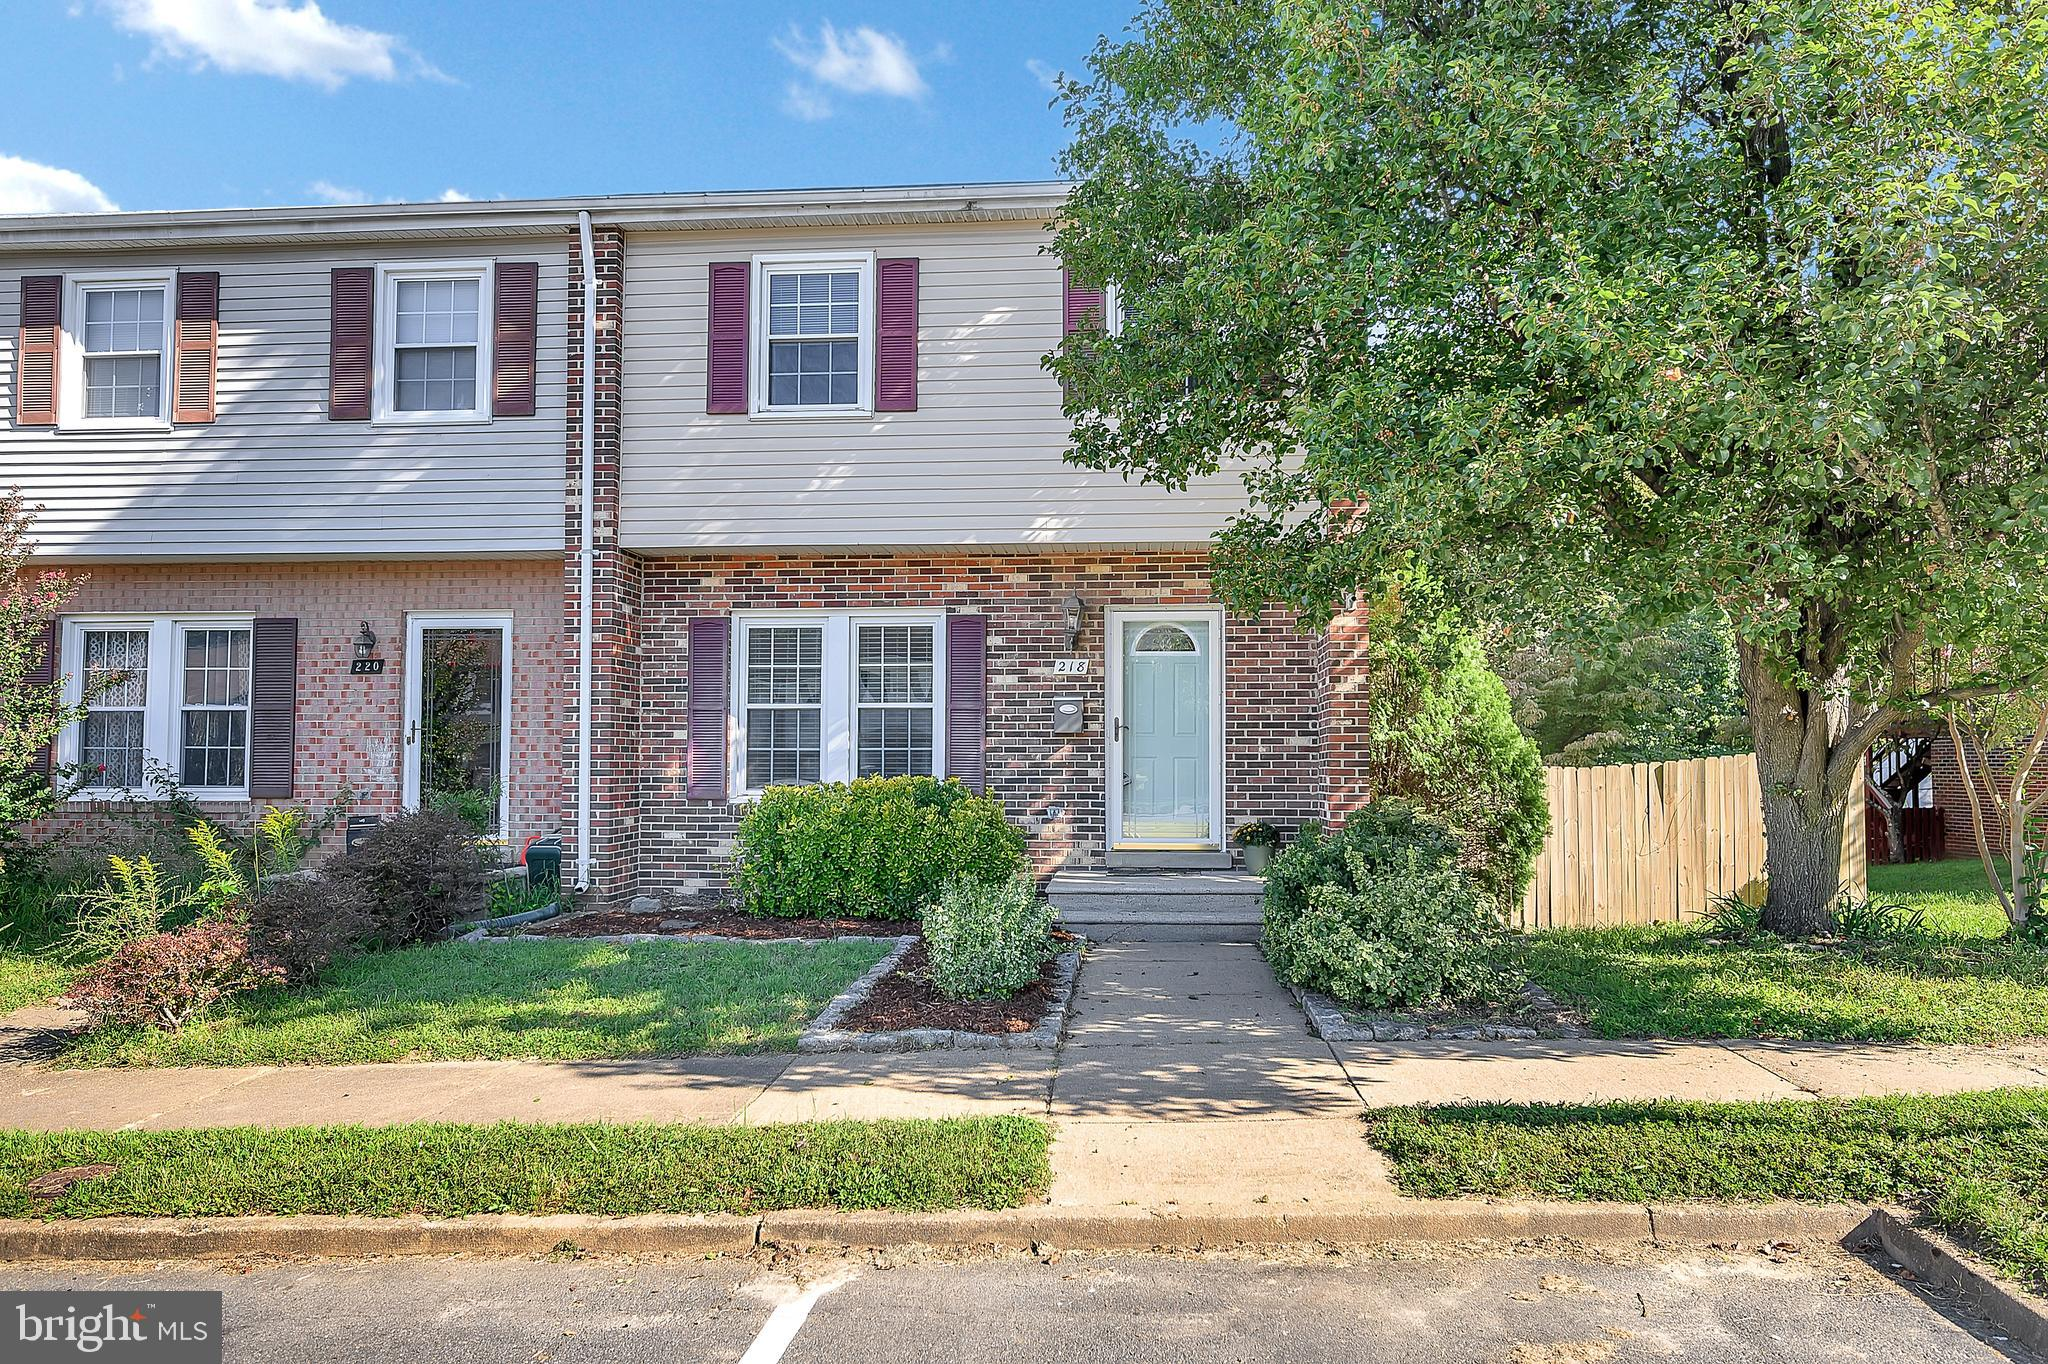 Lovely 3 Bedroom End Unit Townhome with 2 Full Bathrooms and 2 Half Bathrooms.  Updated Kitchen with